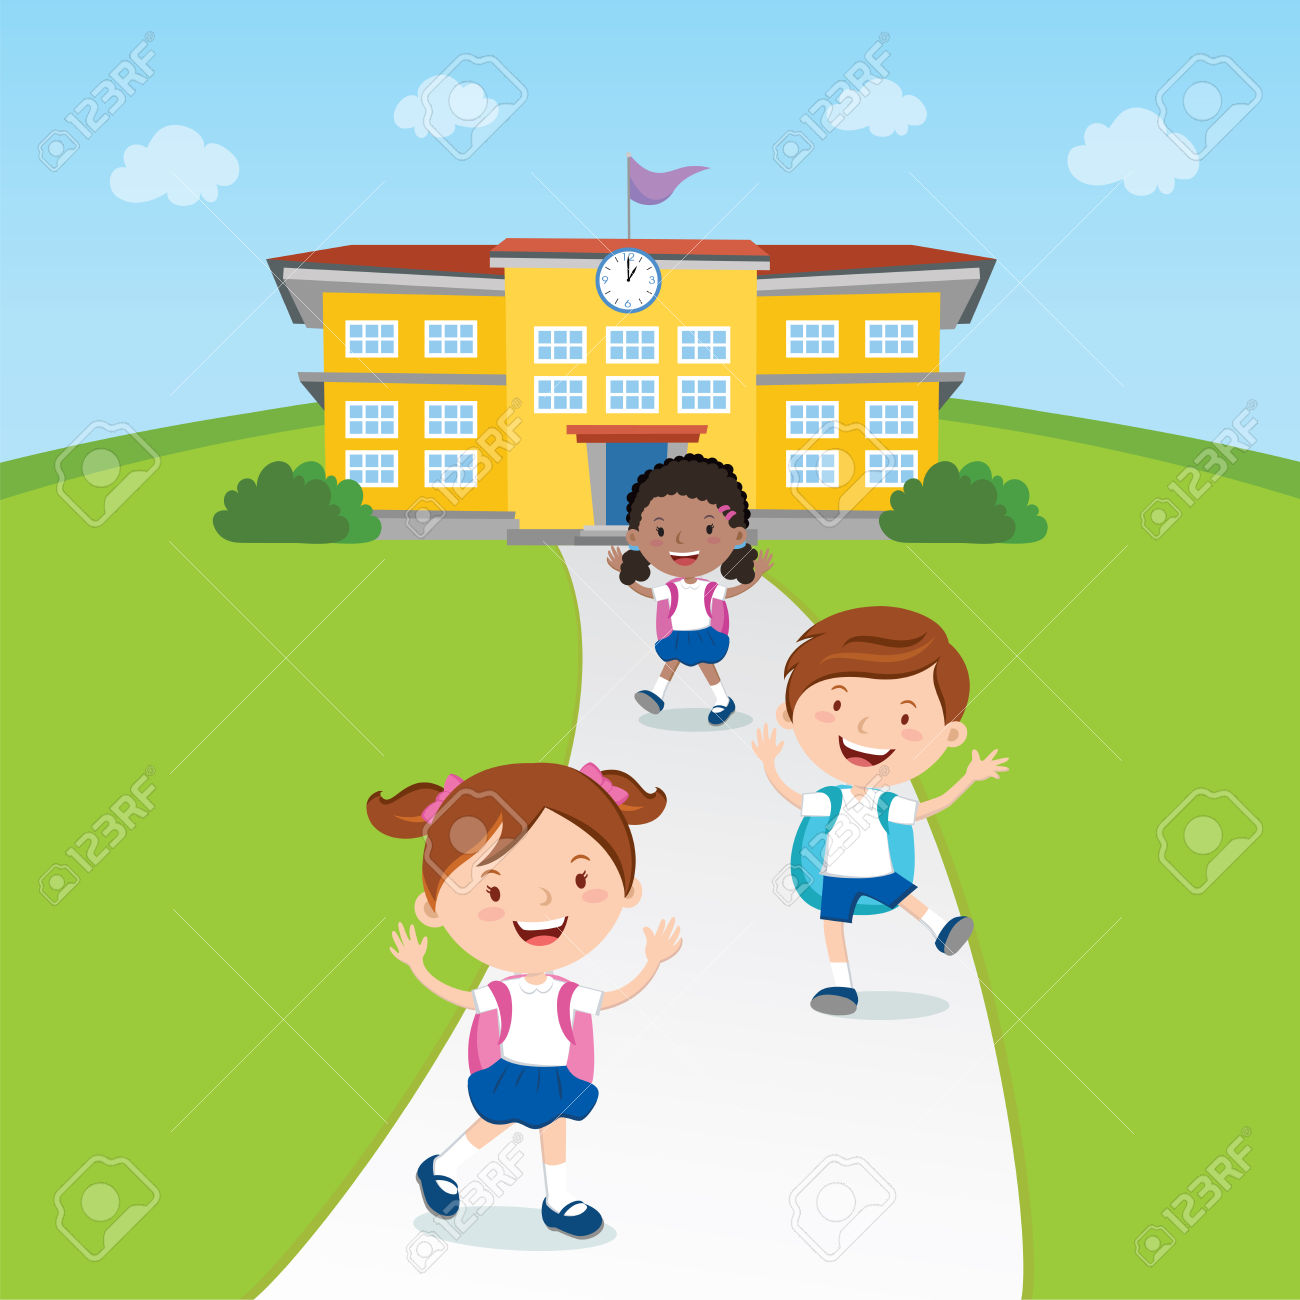 Going Home From School Clipart.